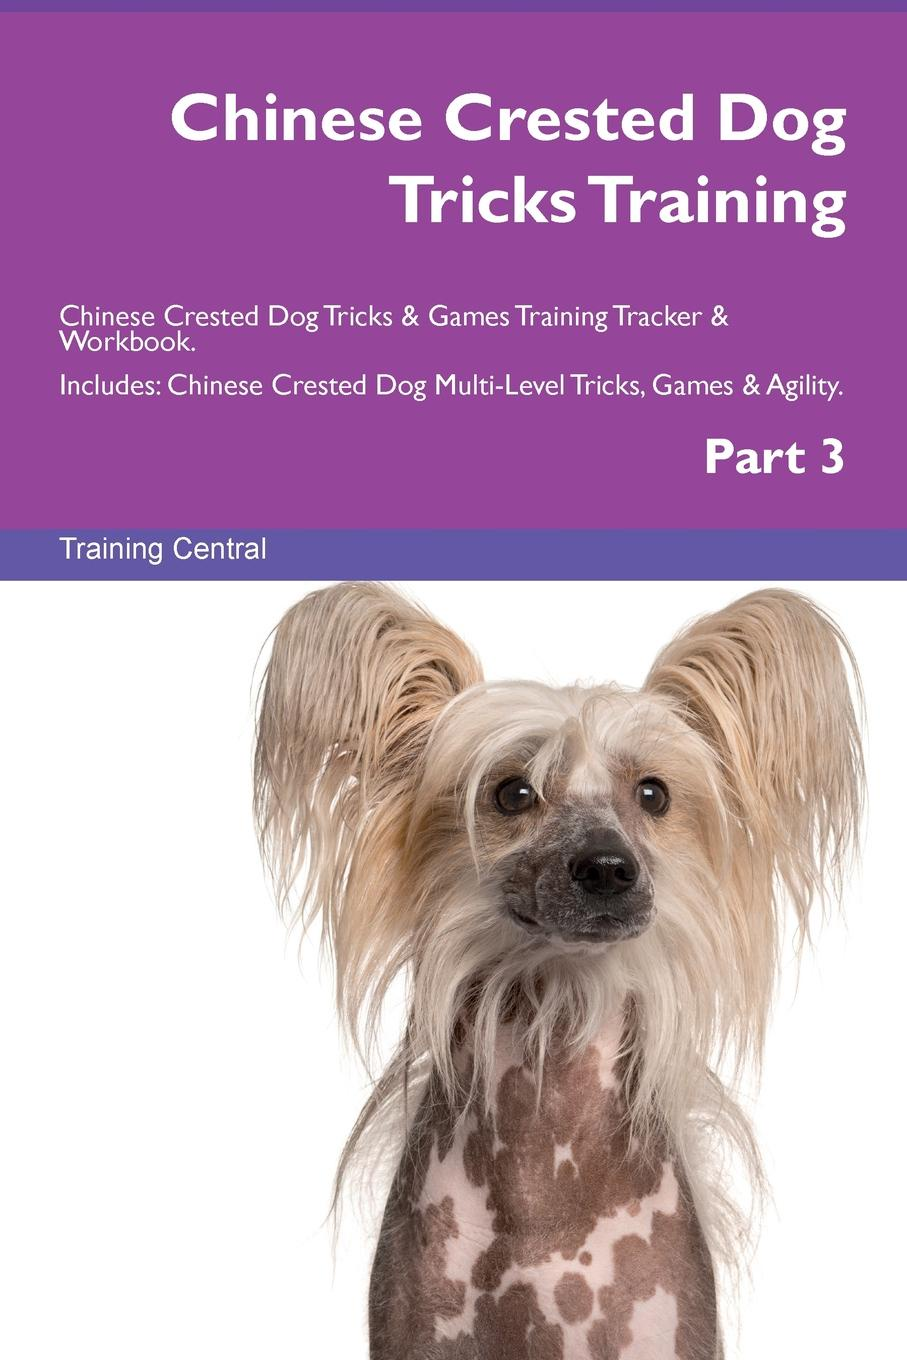 Training Central Chinese Crested Dog Tricks Training Chinese Crested Dog Tricks . Games Training Tracker . Workbook. Includes. Chinese Crested Dog Multi-Level Tricks, Games . Agility. Part 3 chinese 传 道 书 虚空的虚空 isbn 9785392044276